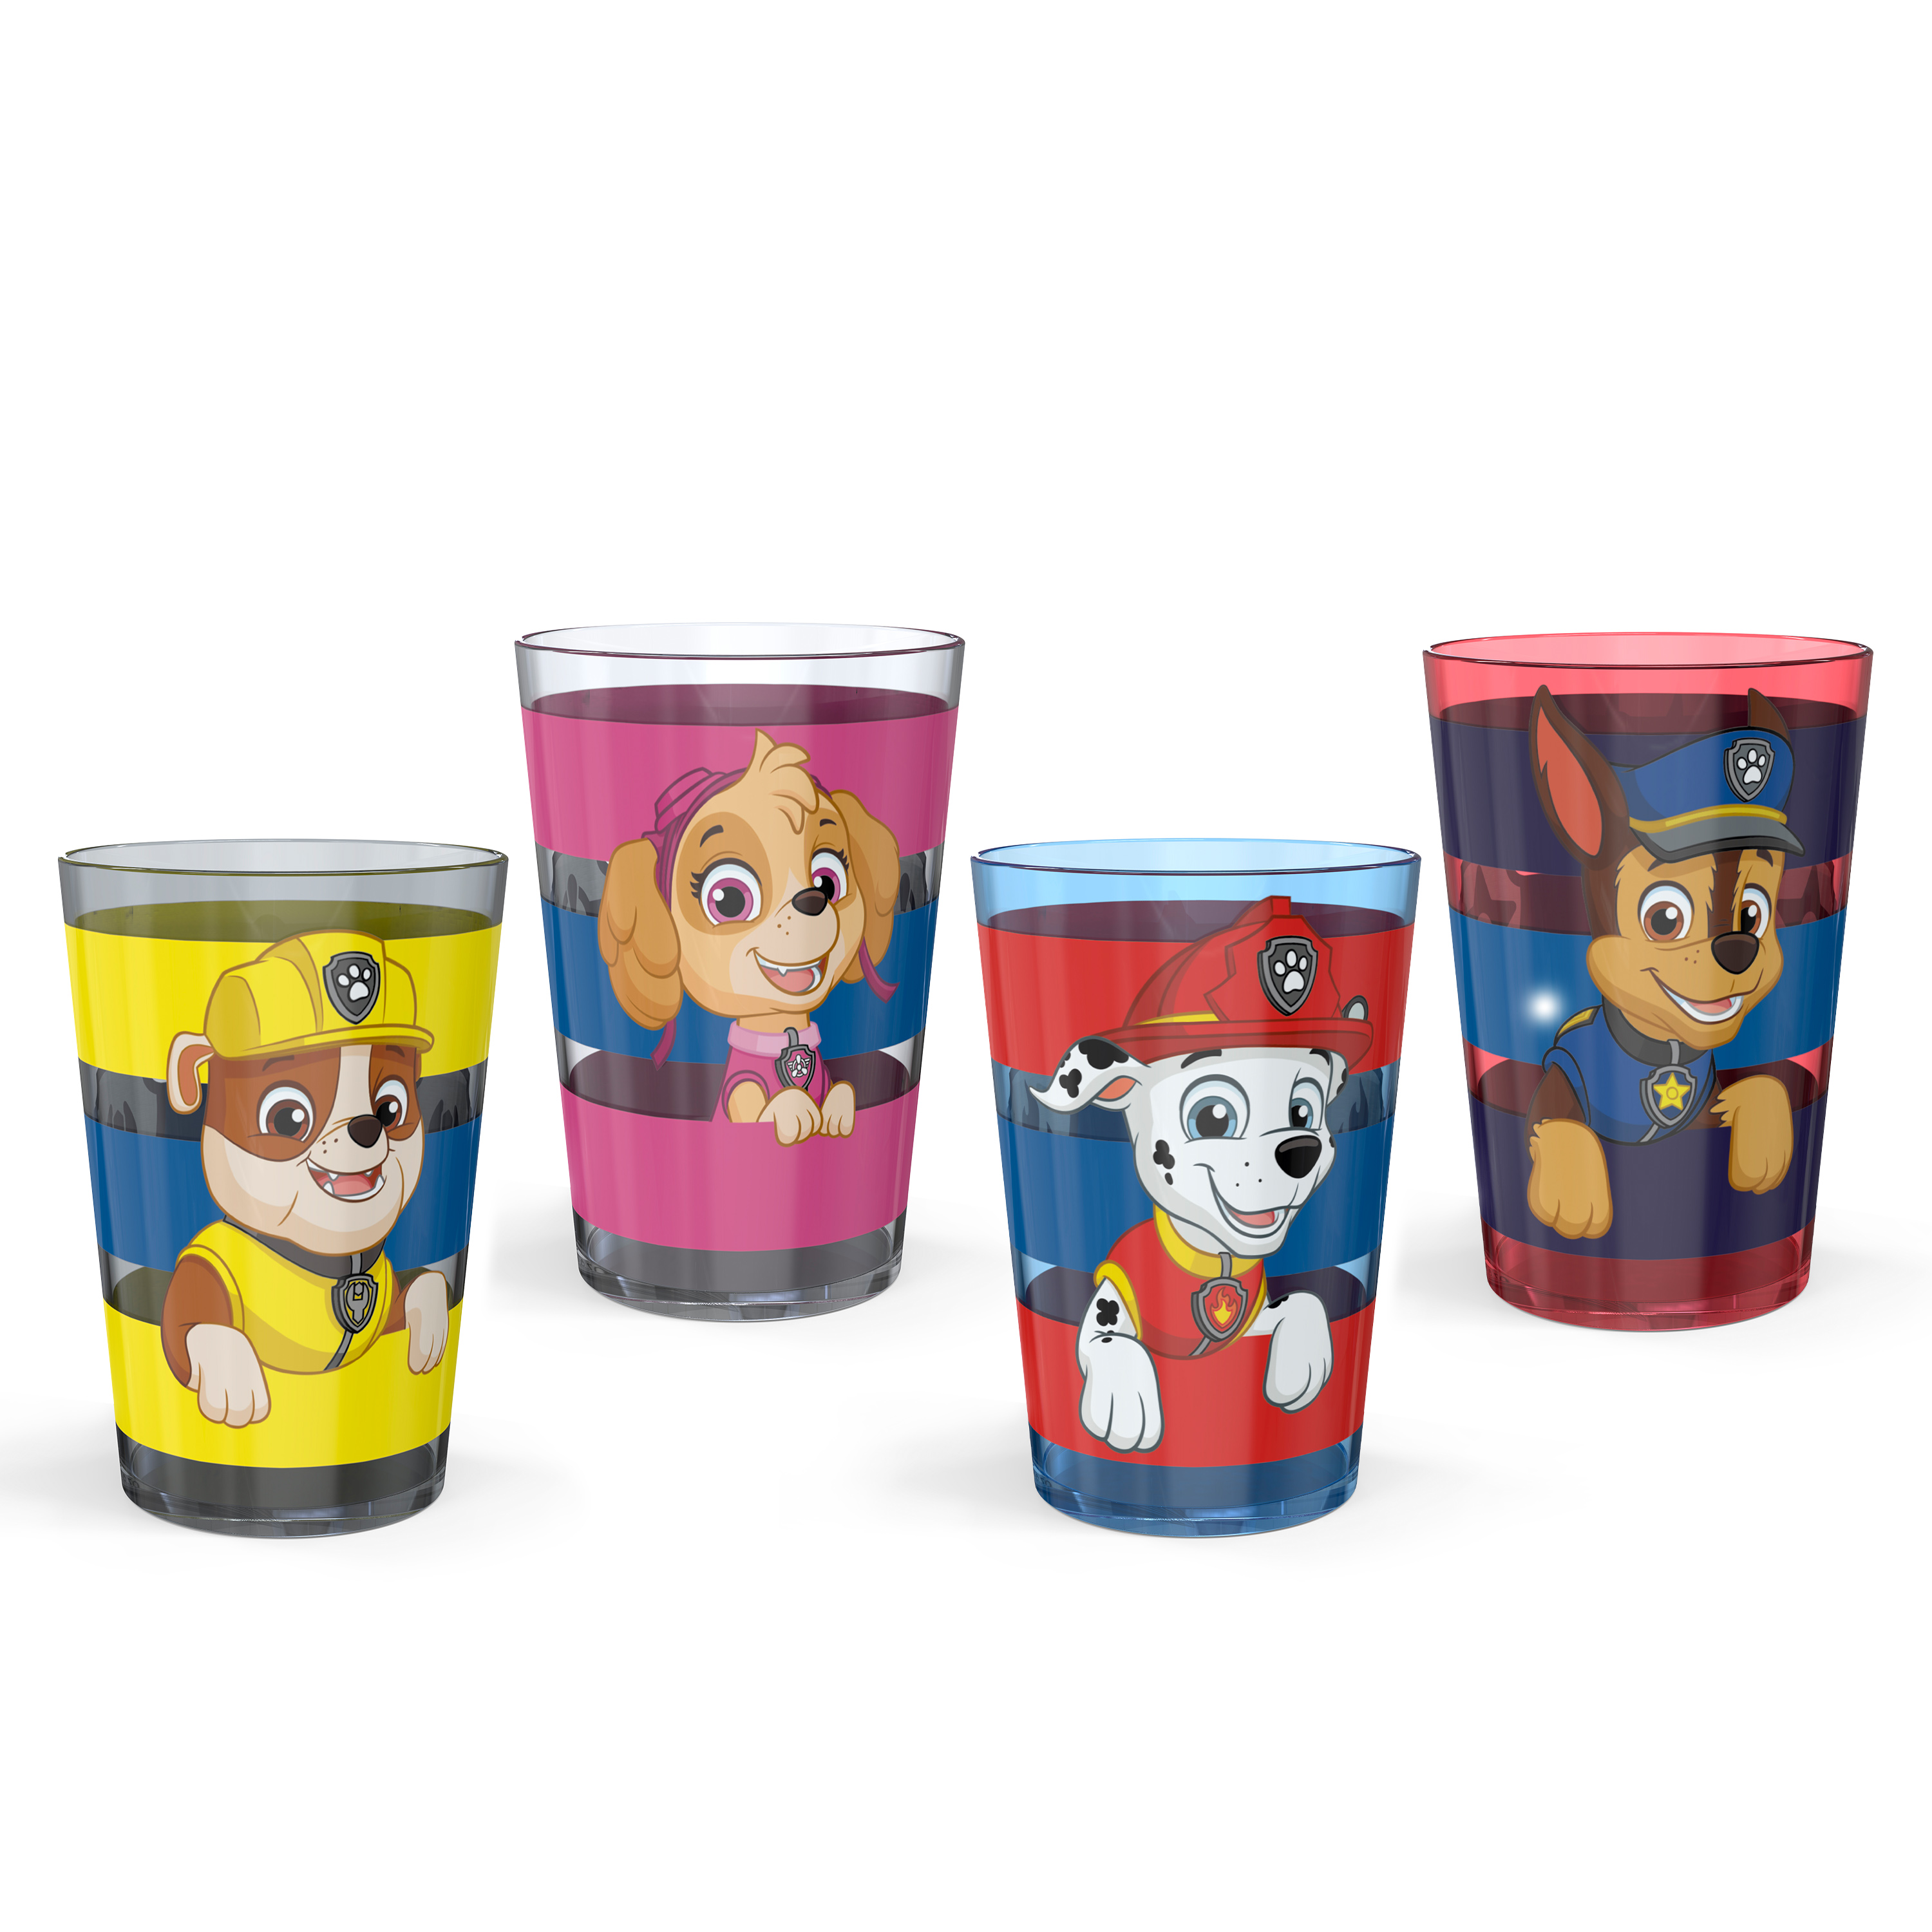 Paw Patrol 14.5 ounce Tumbler, Chase, Skye and Friends, 4-piece set slideshow image 1